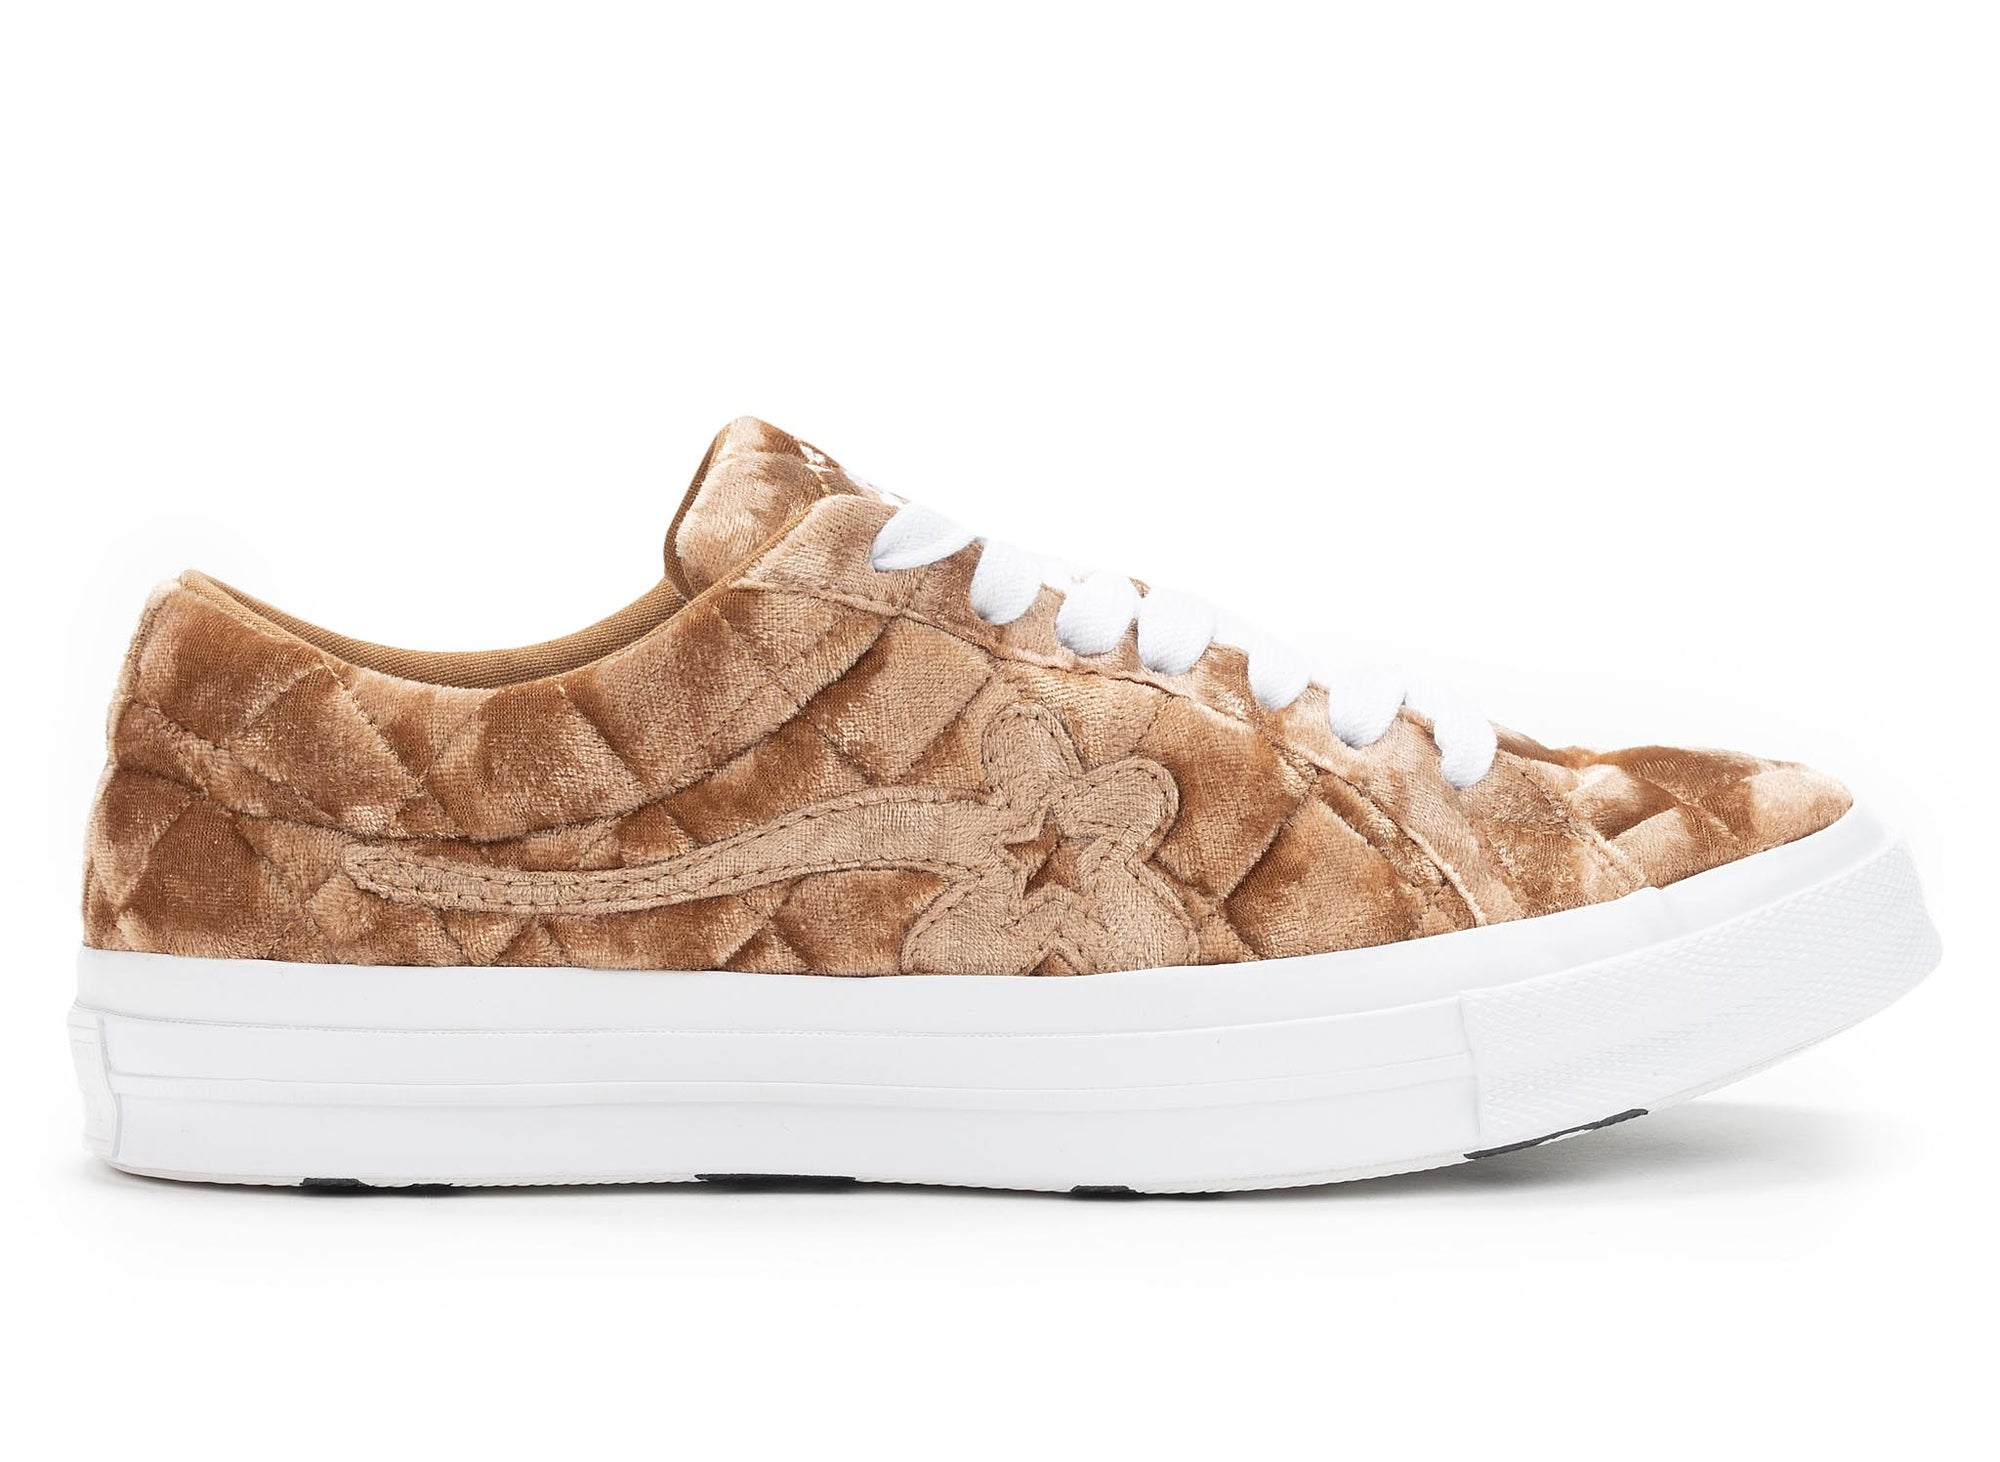 Converse One Star Ox Golf Le Fleur TTC Quilted Velvet 'Brown Sugar'